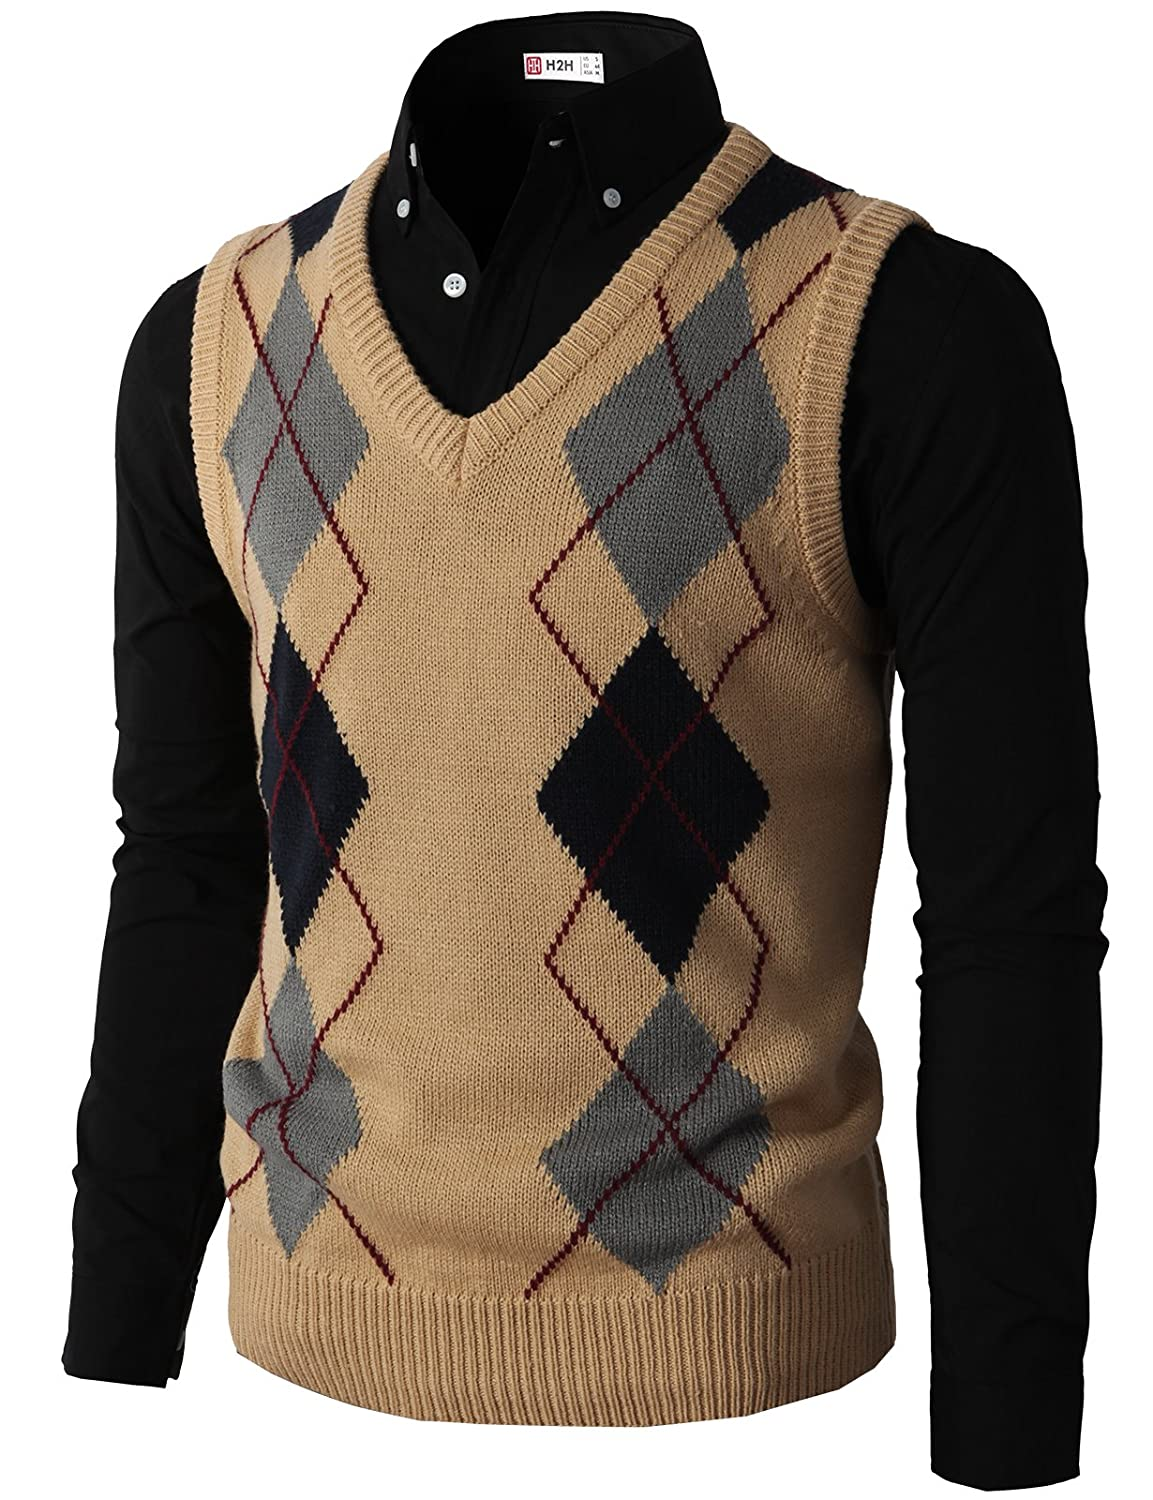 Men's Vintage Inspired Vests H2H Mens Casual Slim Fit Argyle V-Neck Golf Sweater Vest Of Various Colors $29.70 AT vintagedancer.com